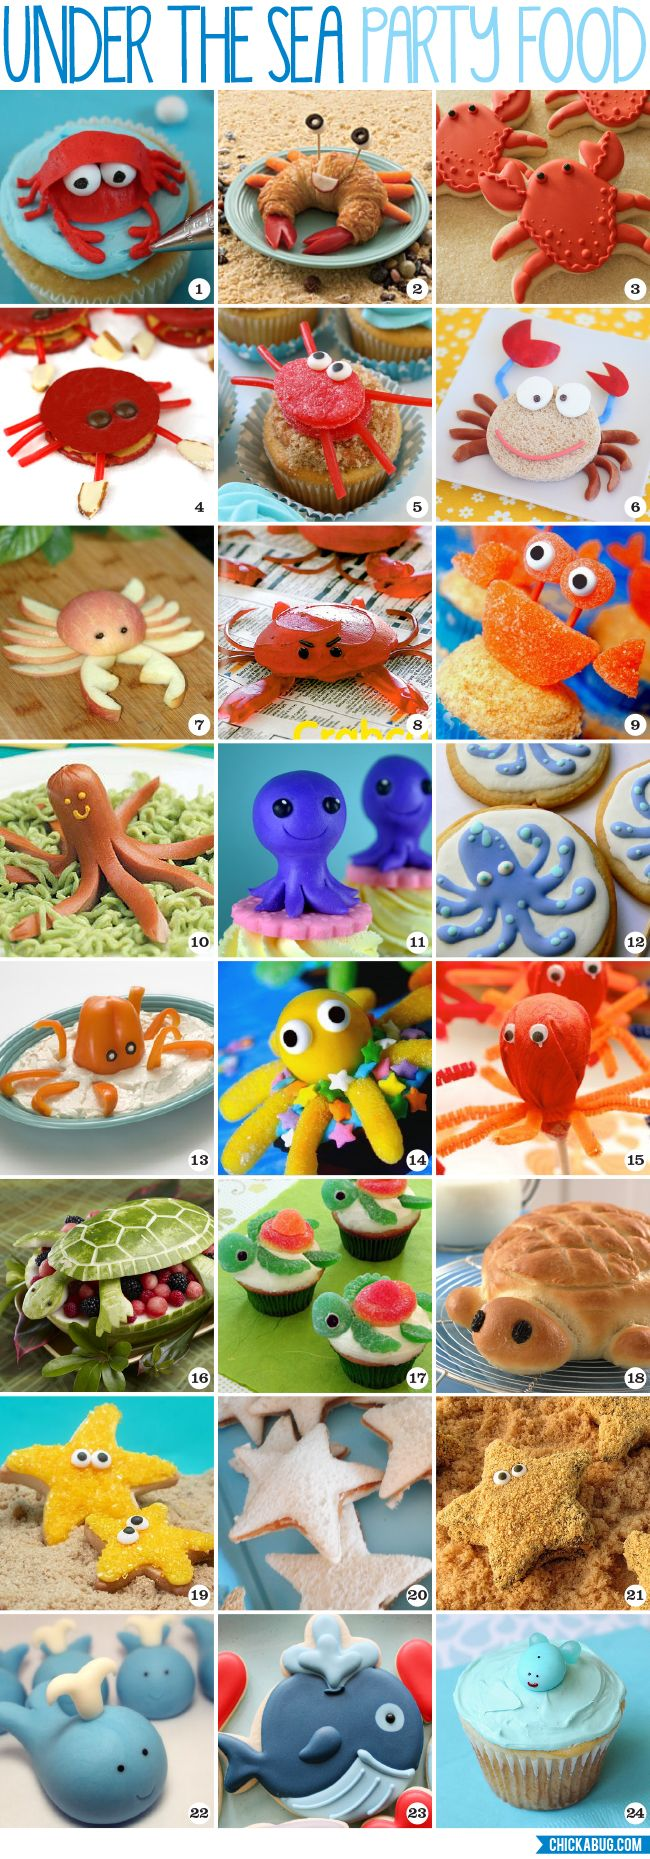 Under the Sea party food ideas - Adorable recipes and tutorials to make crabs, octopuses, turtles, starfish and whales!